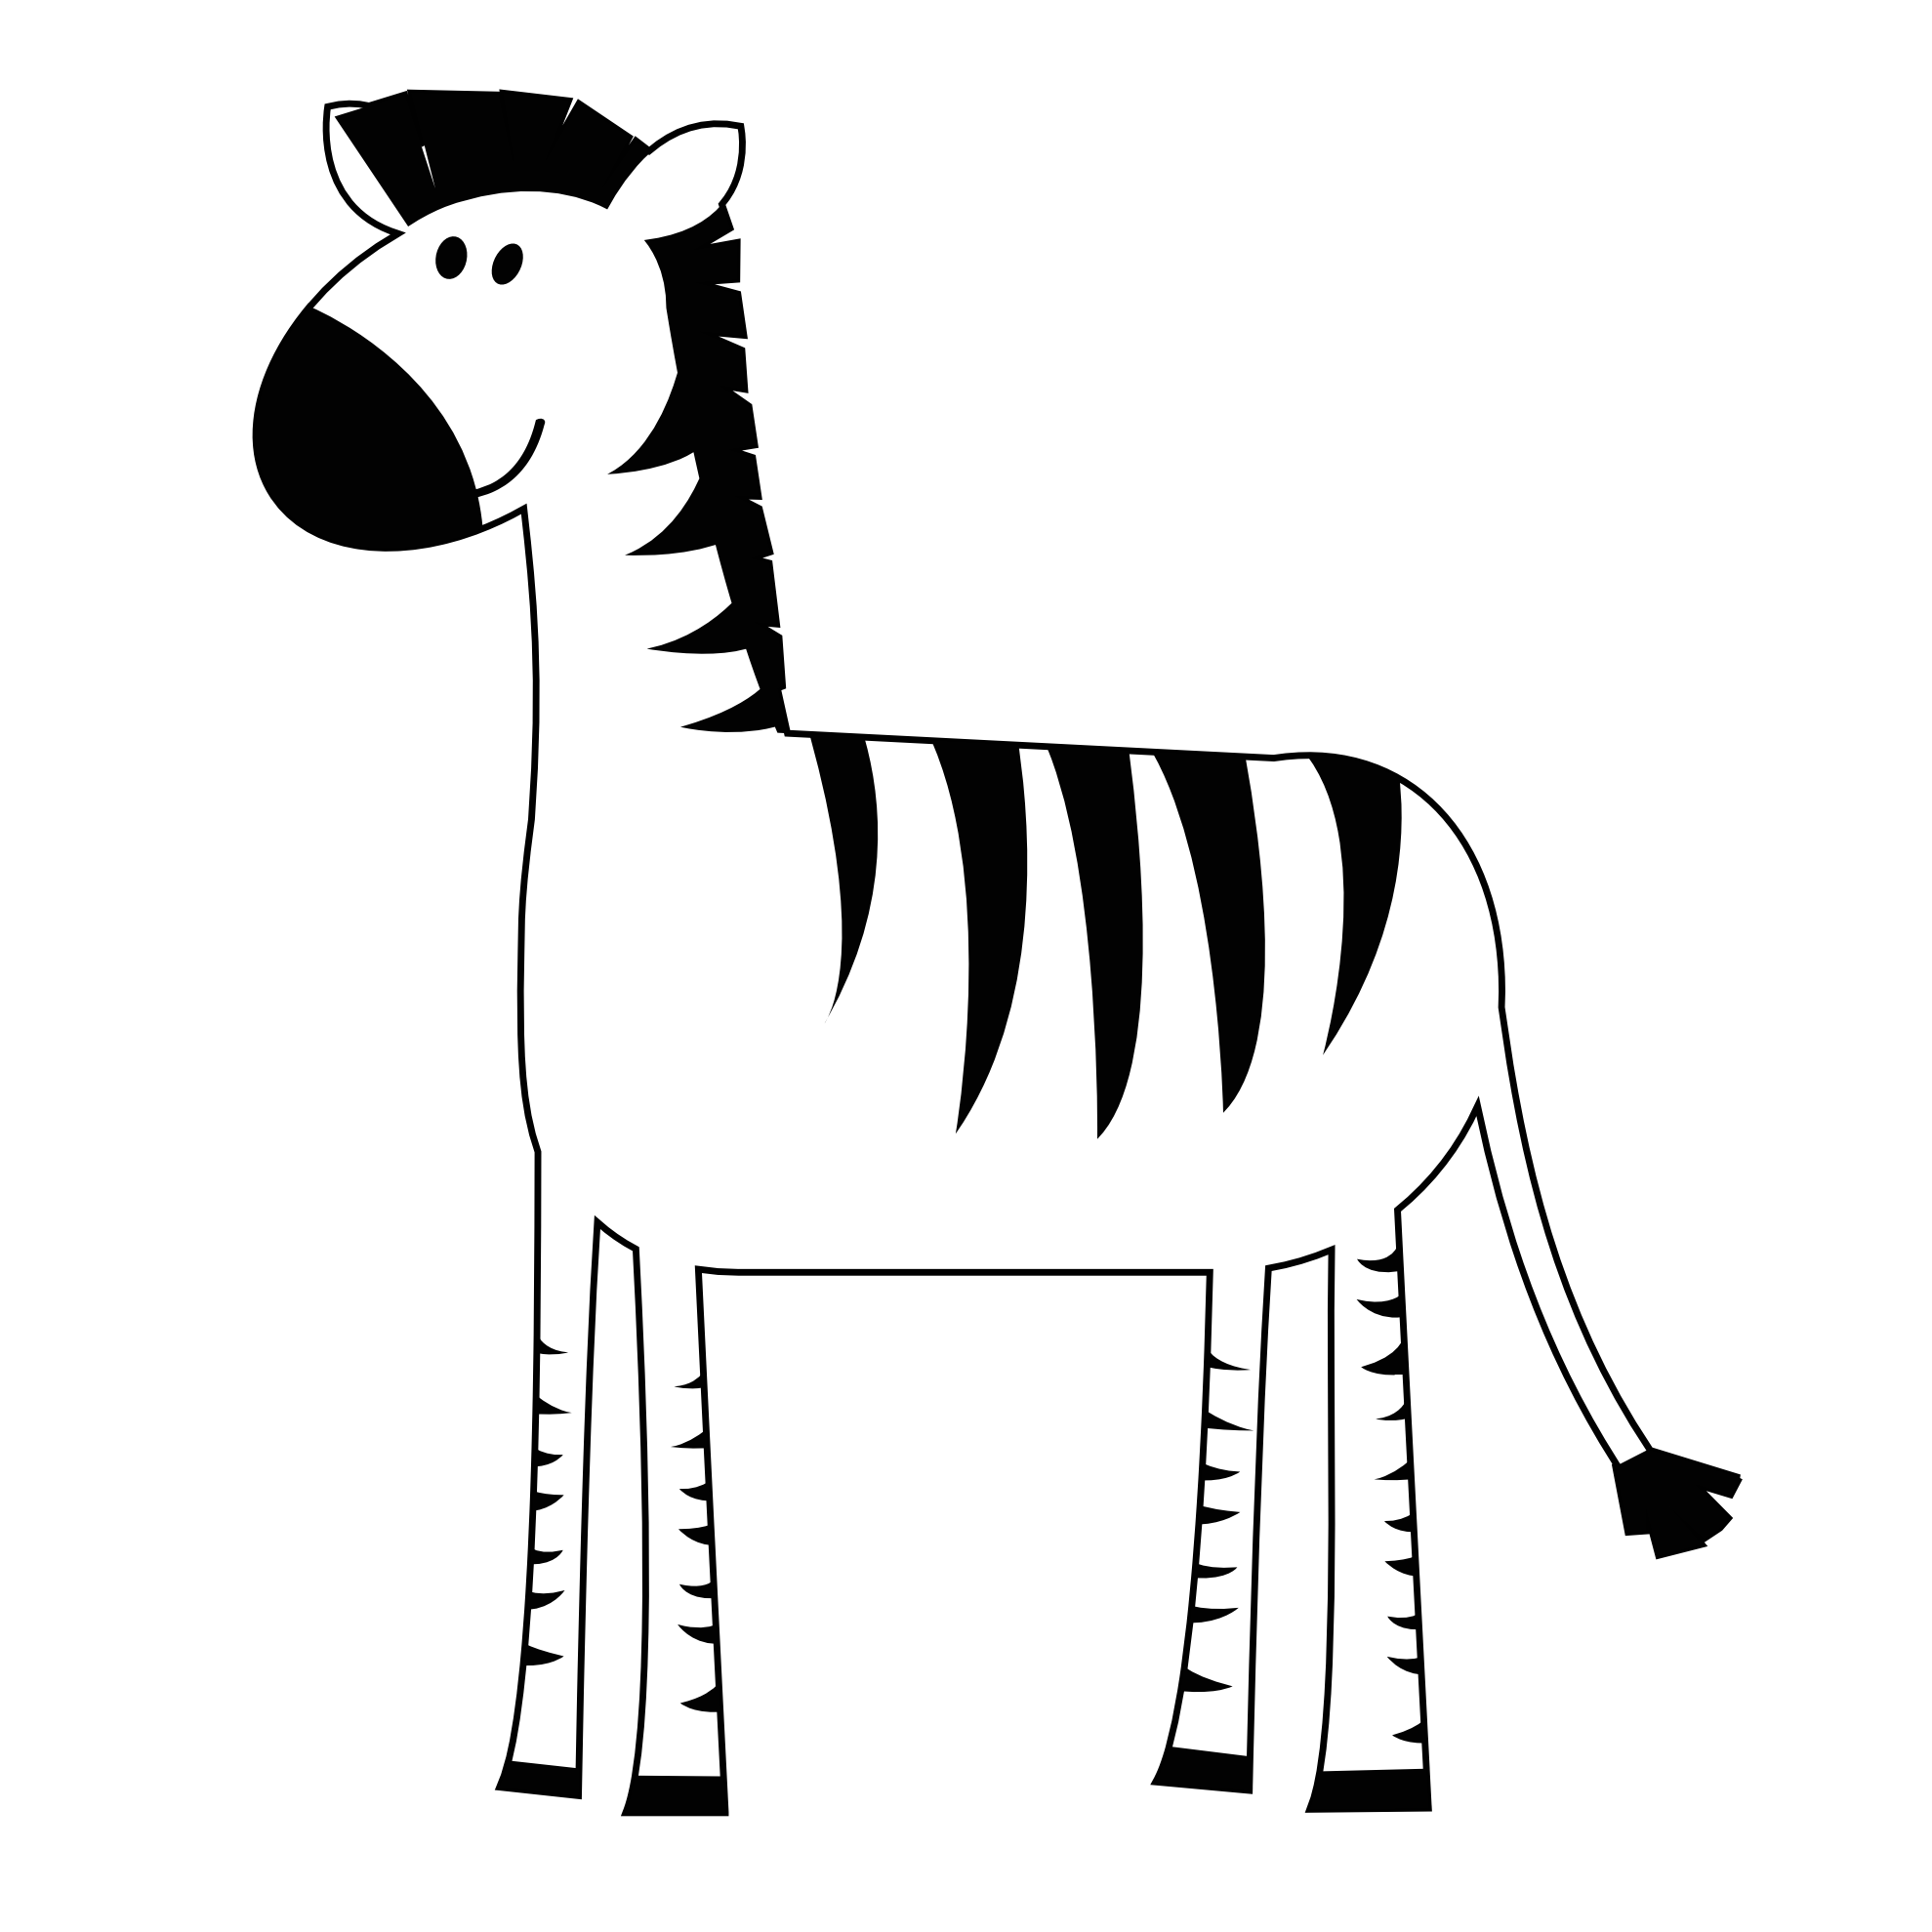 1979x1979 Cartoon Zebra Clip Art